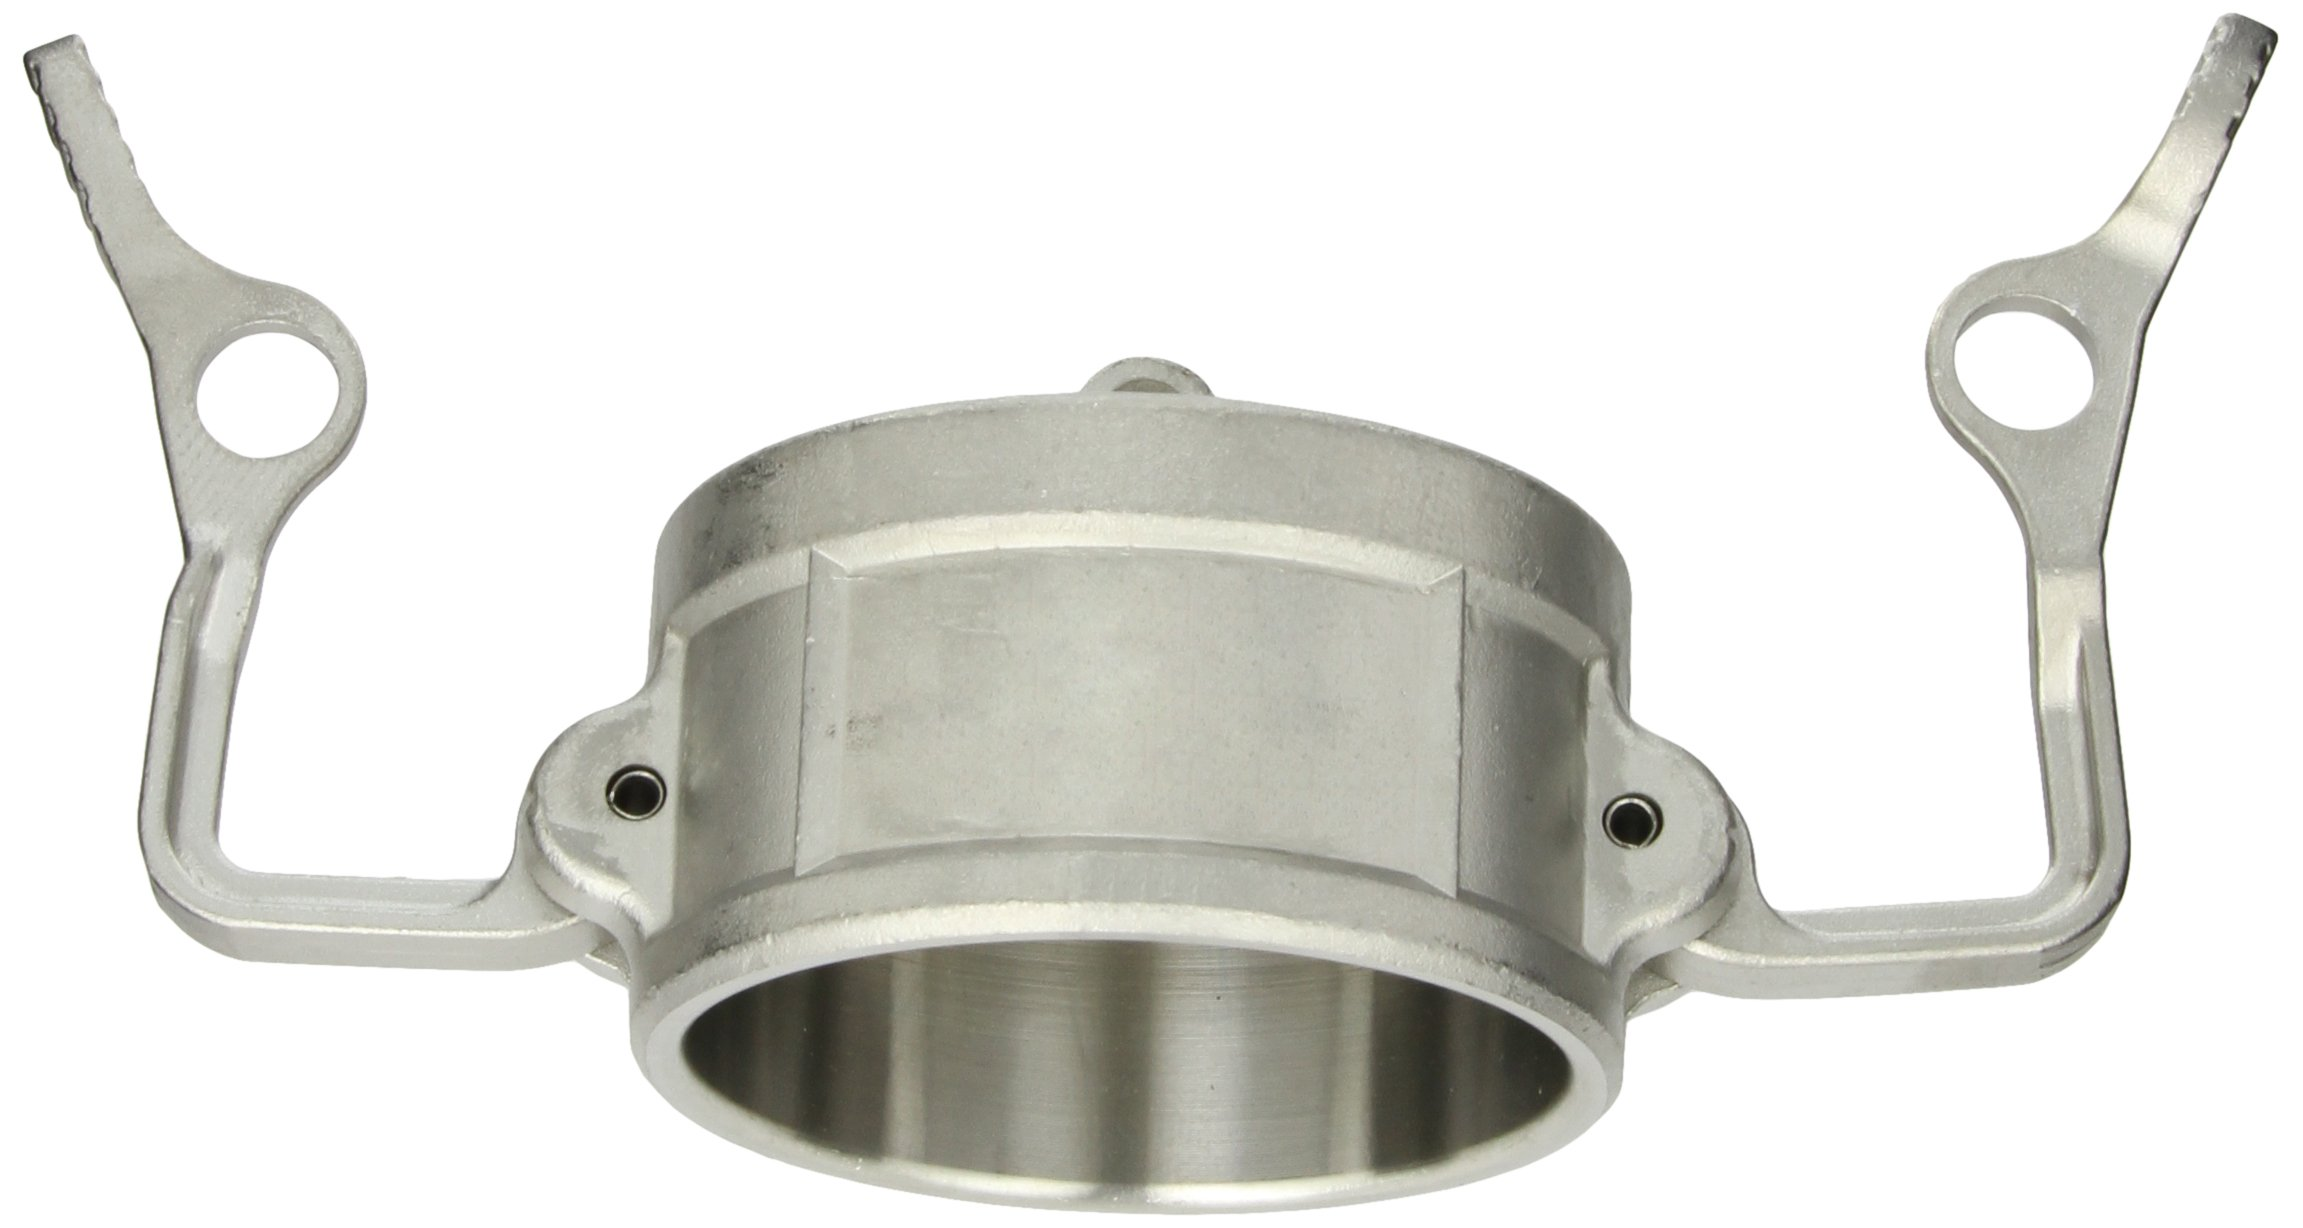 Dixon 300DC-LSS Stainless Steel 316 Cam and Groove Hose Fitting, Lockable Dust Cap, 3''